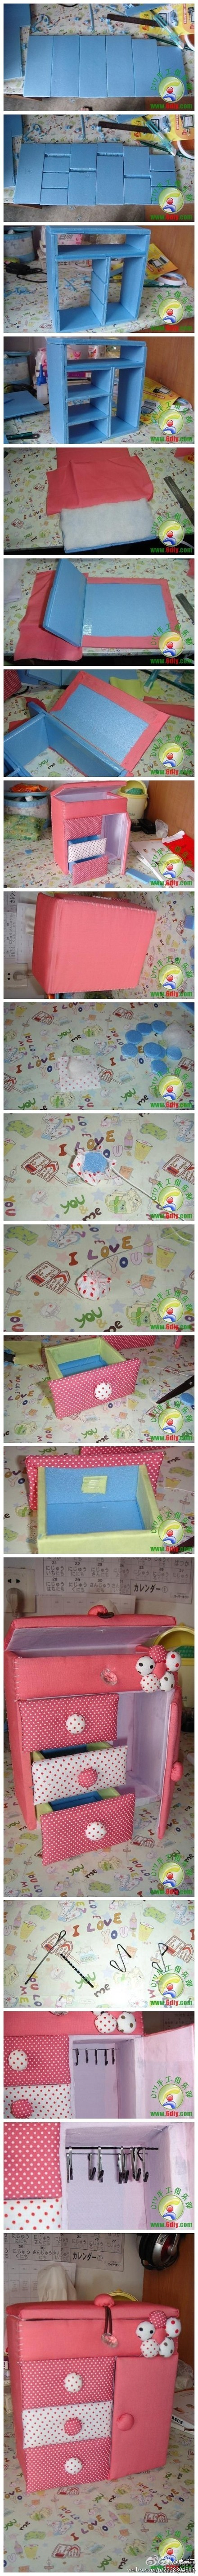 How to make Cute Toy Dresser step by step DIY tutorial instructions